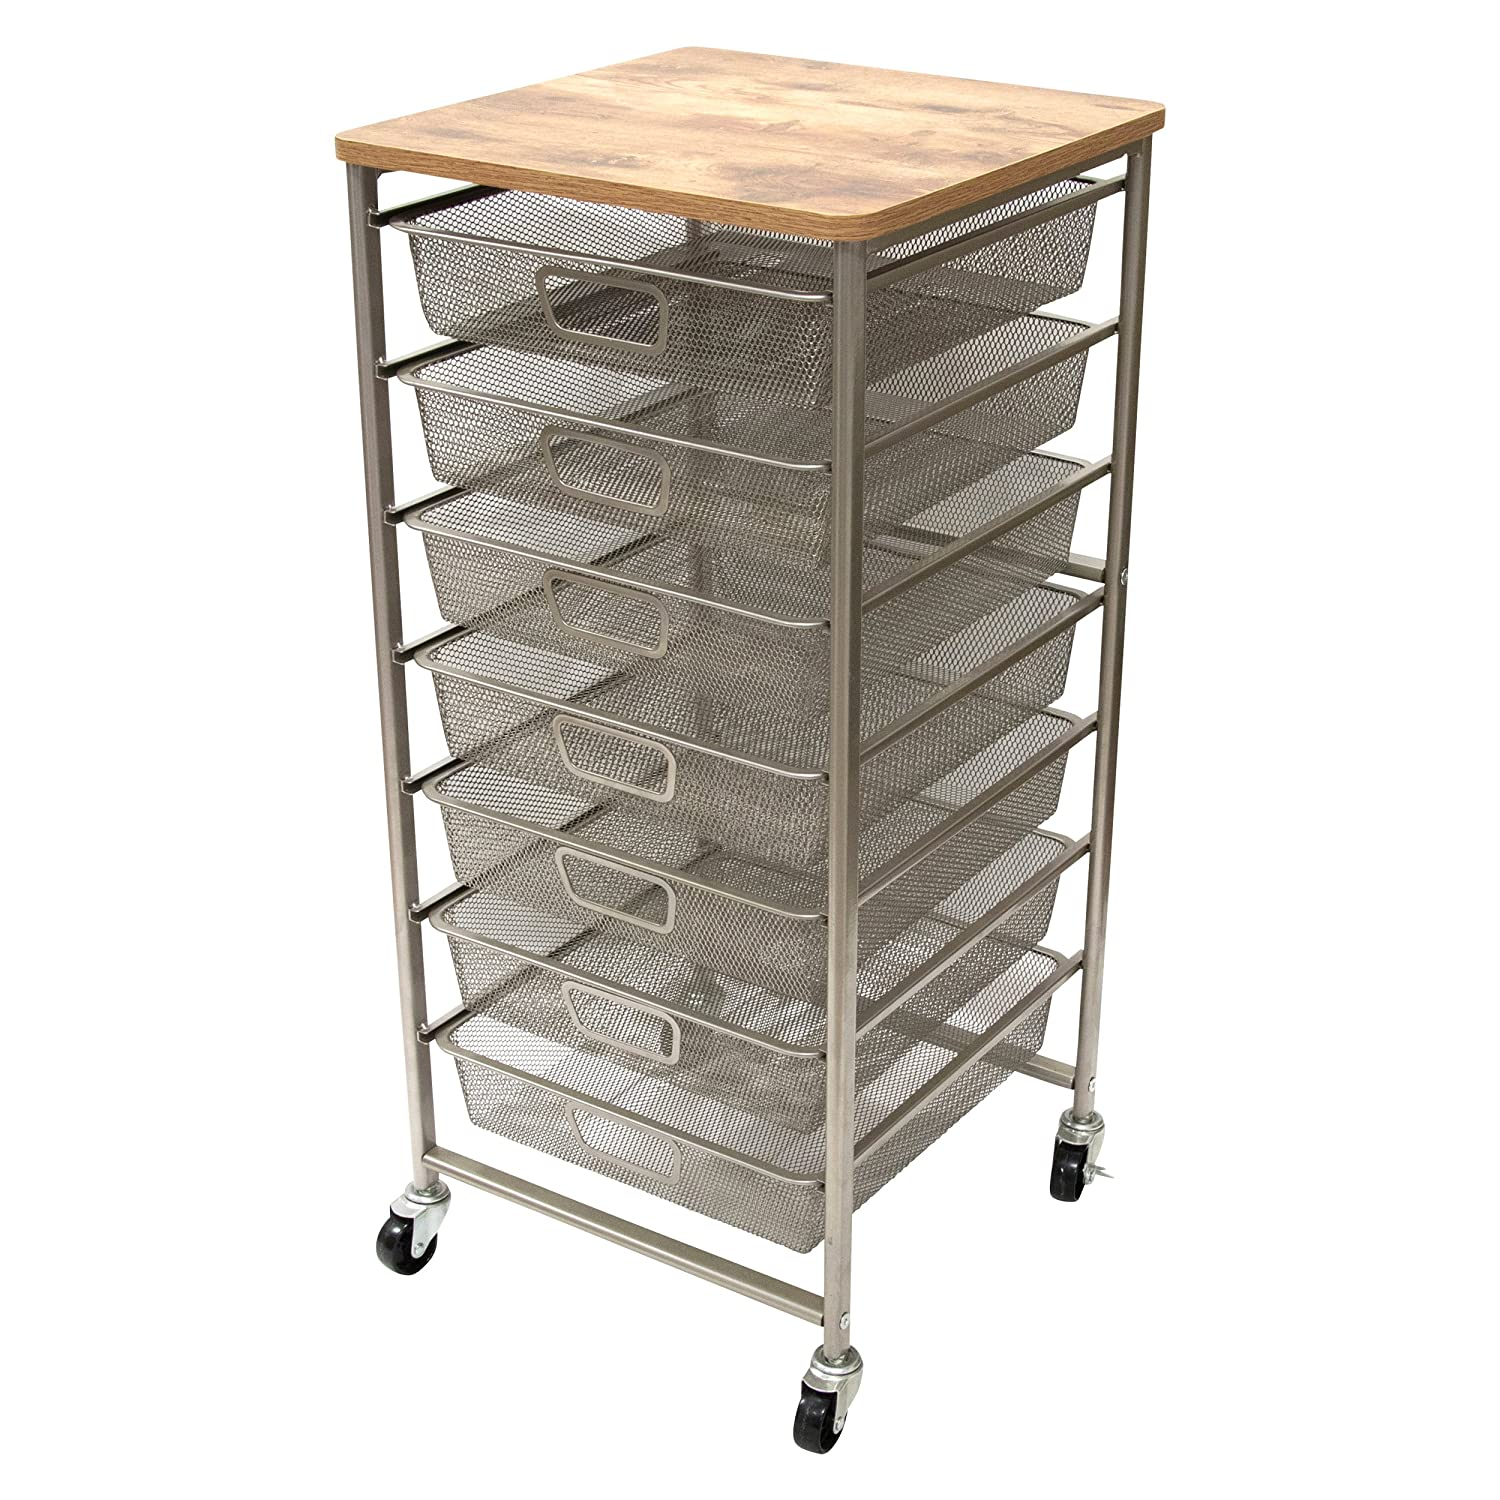 Tim Holtz Idea-ology CH93520 Signature Design Industrial Storage Cart, 33.5 X 15.75 X 15.75 Advantus Corp.